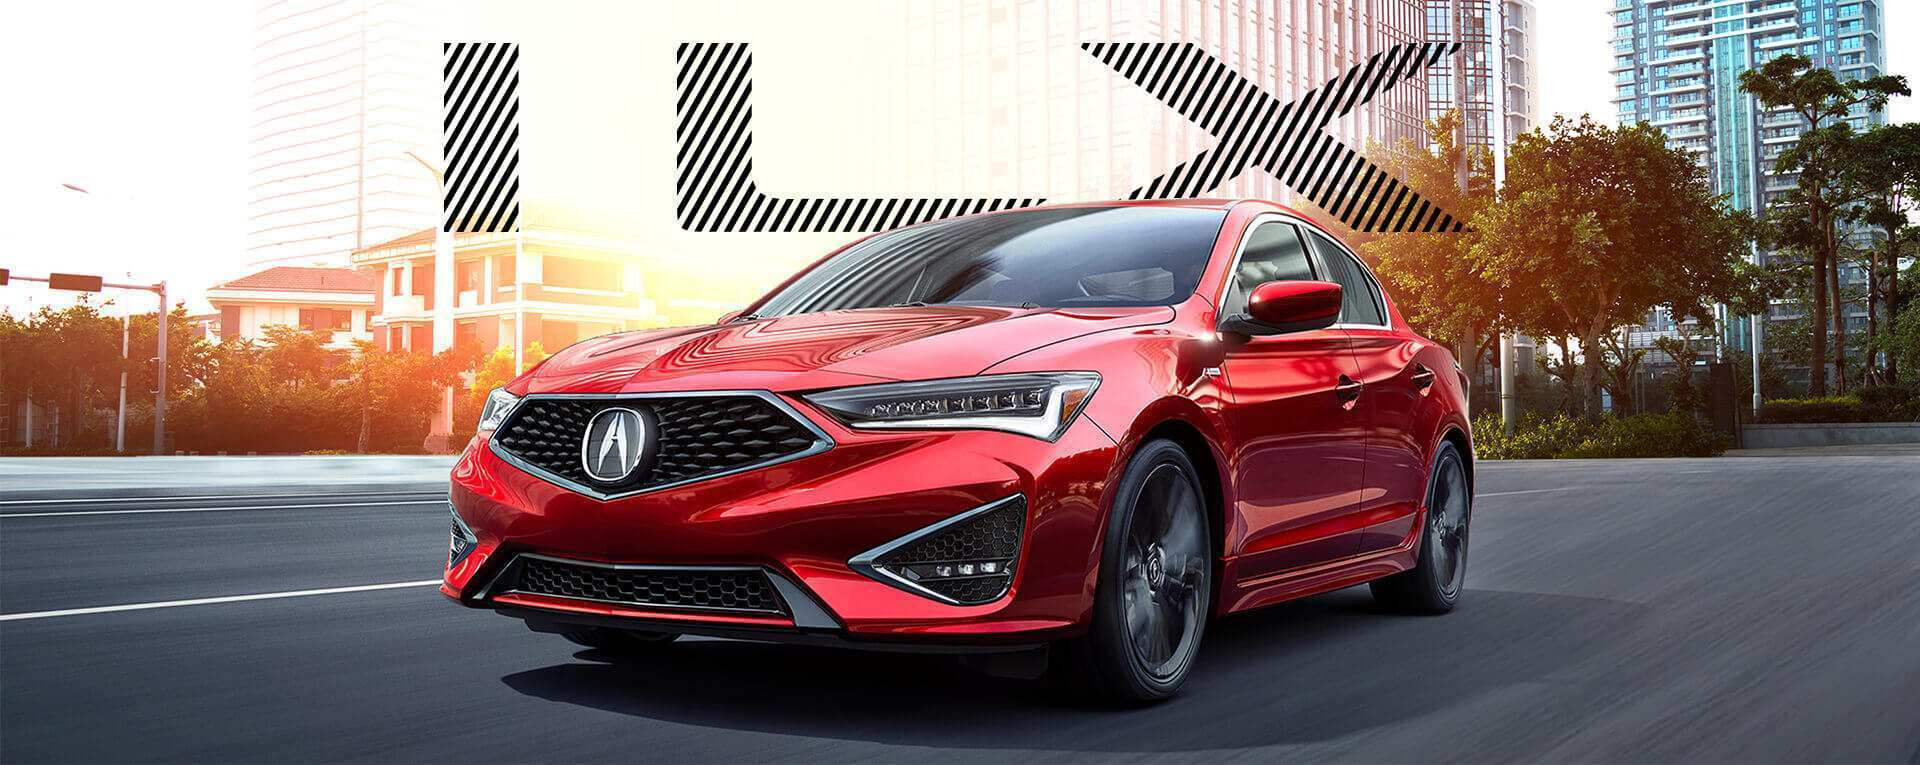 46 The 2019 Acura ILX Configurations